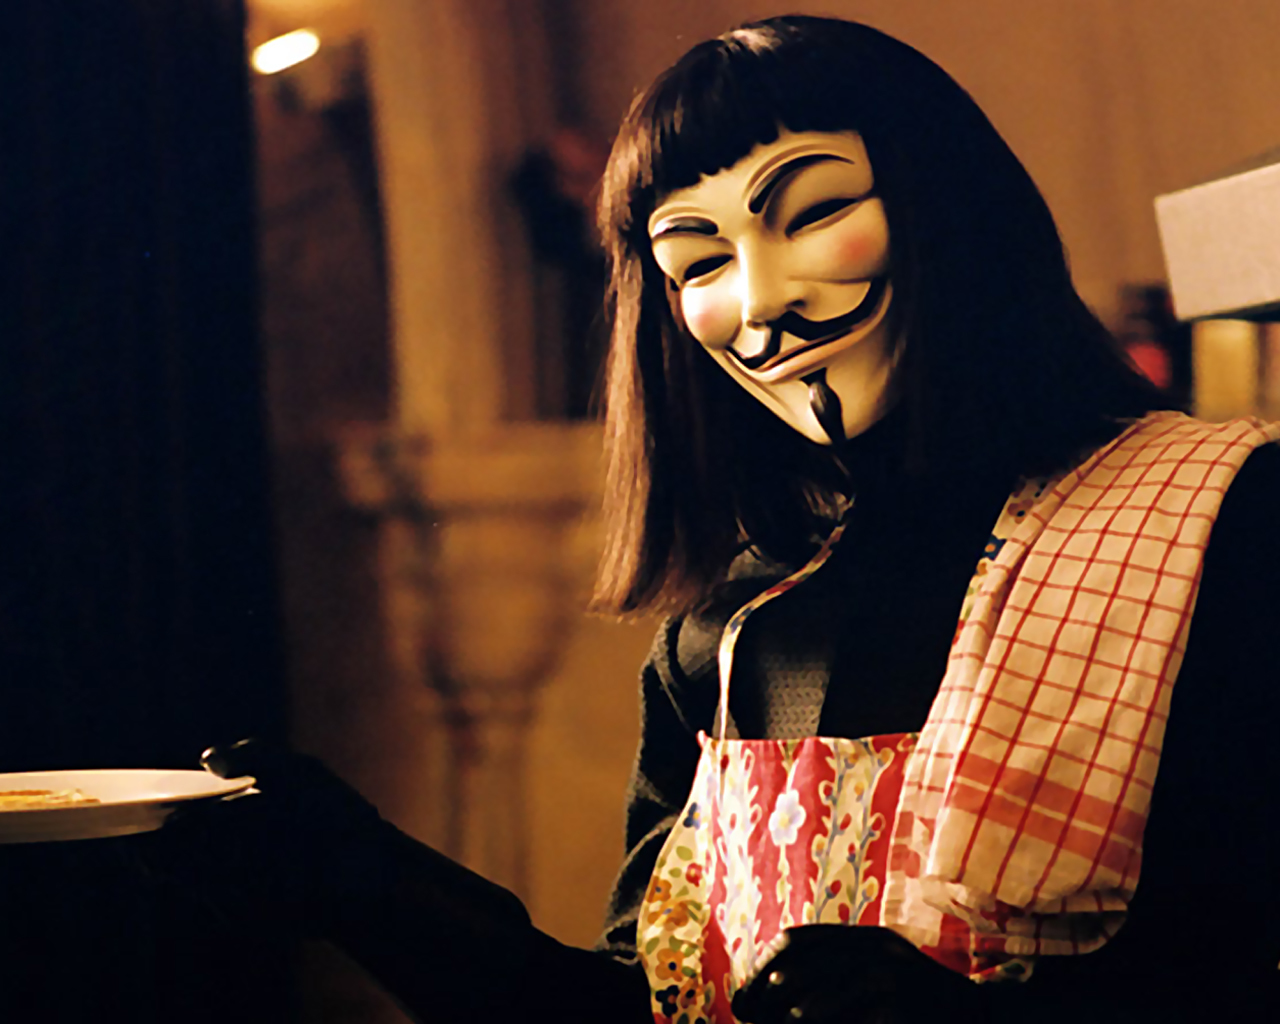 21017 download wallpaper Cinema, V For Vendetta screensavers and pictures for free